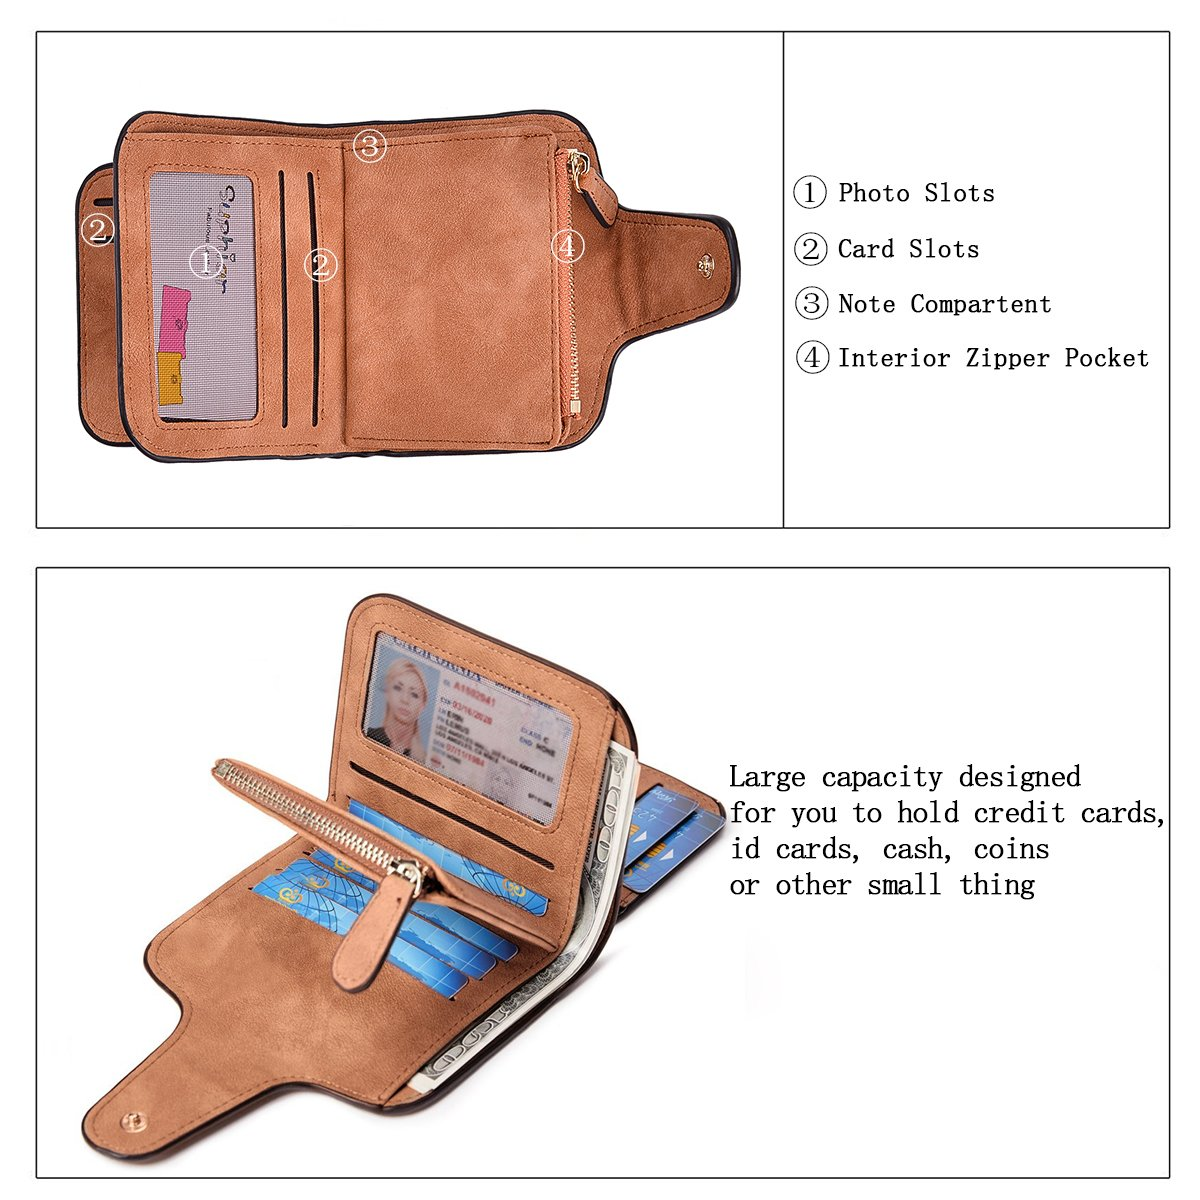 Wallet for Women Leather Clutch Short Purse Ladies Credit Card Holder Organizer with Zip Pocket - Brown by EUGO (Image #2)